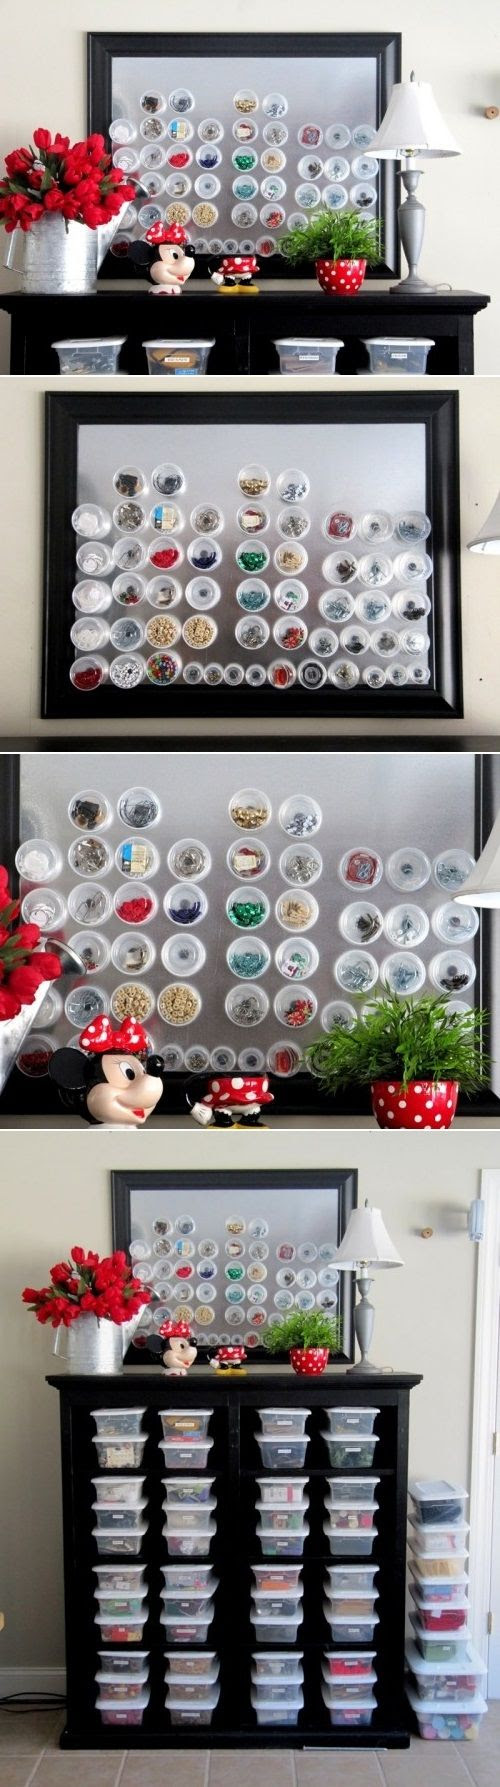 DIY Magnetic Storage For Small Things